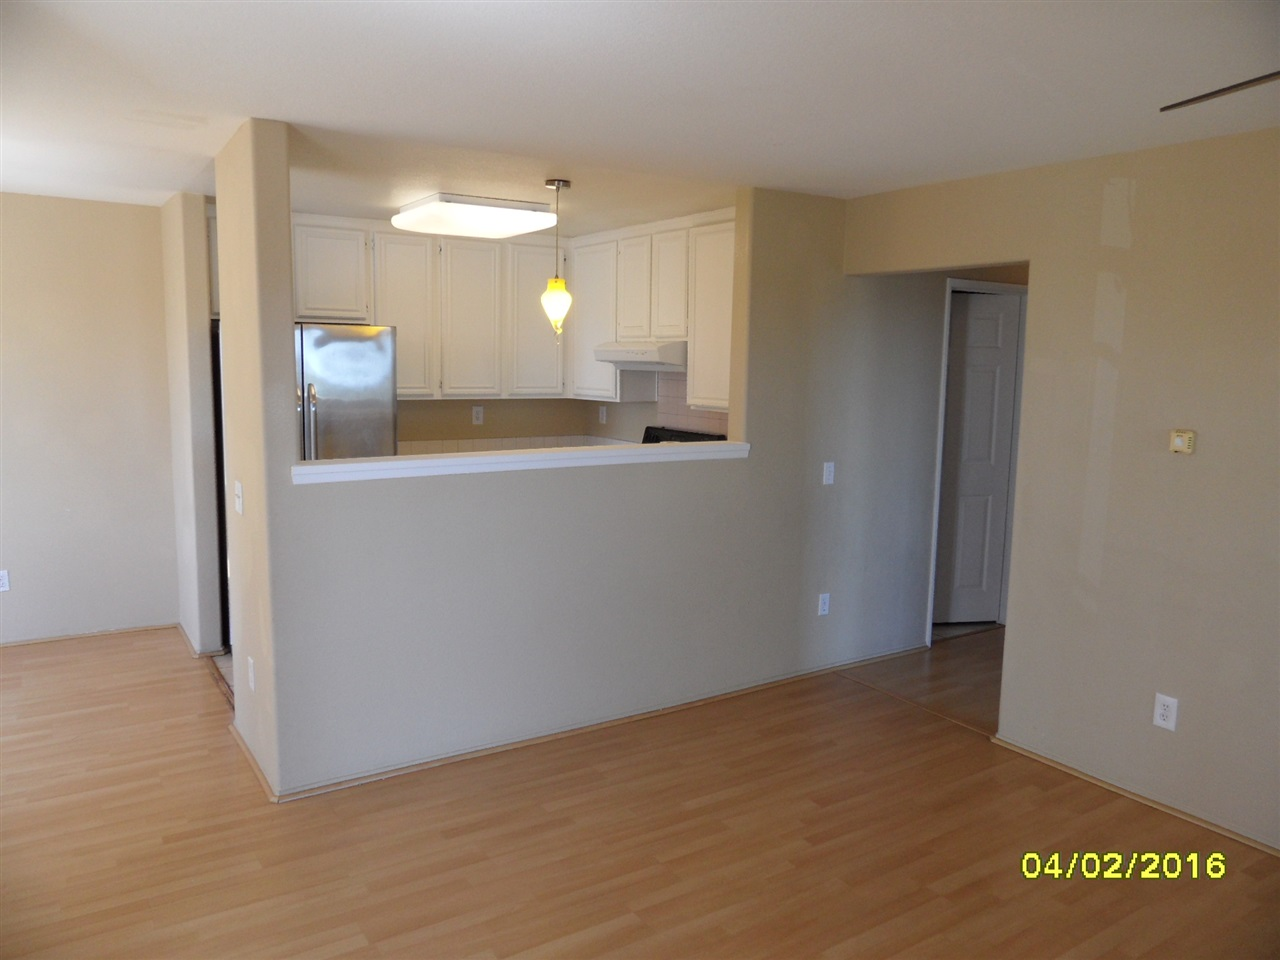 Photo 5: LINDA VISTA Condo for sale : 3 bedrooms : 2012 Coolidge St #93 in San Diego